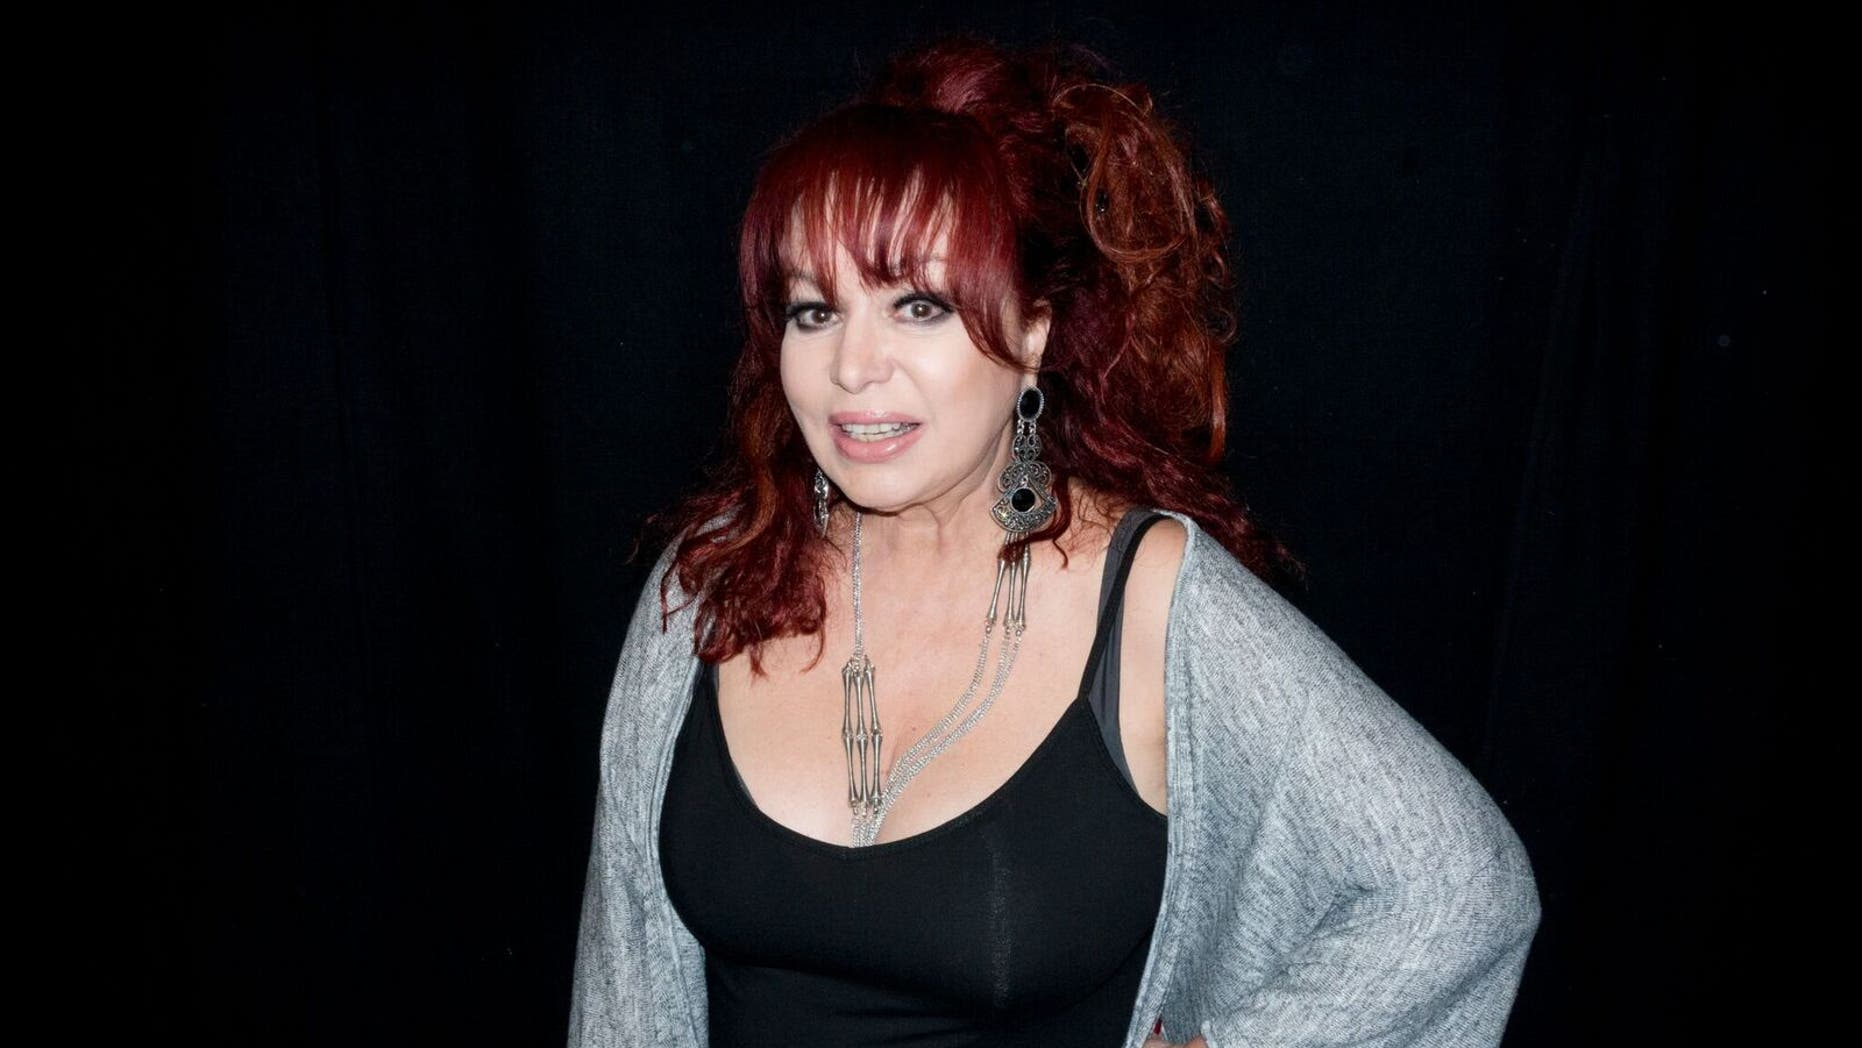 Due to the power of social media platforms like Facebook, Twitter and especially YouTube entertainment legend and Puerto Rican icon Iris Chacón is getting a second look by American audiences.